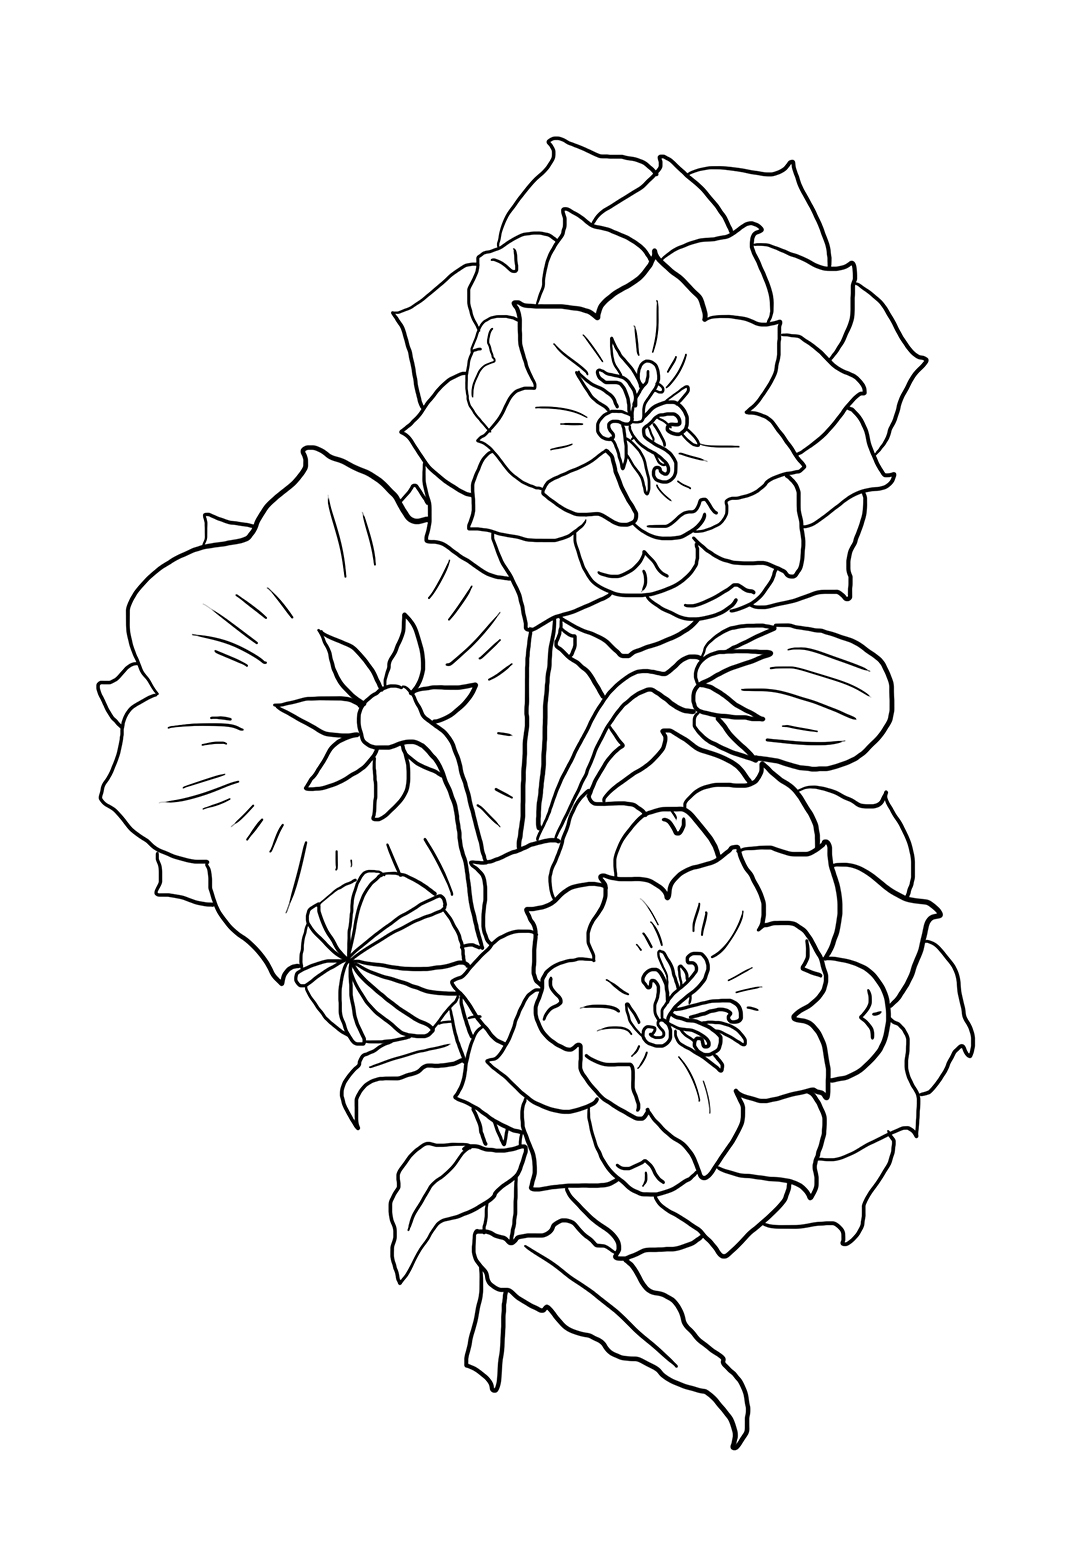 flower coloring pages to print free printable flower coloring pages for kids best flower print to pages coloring